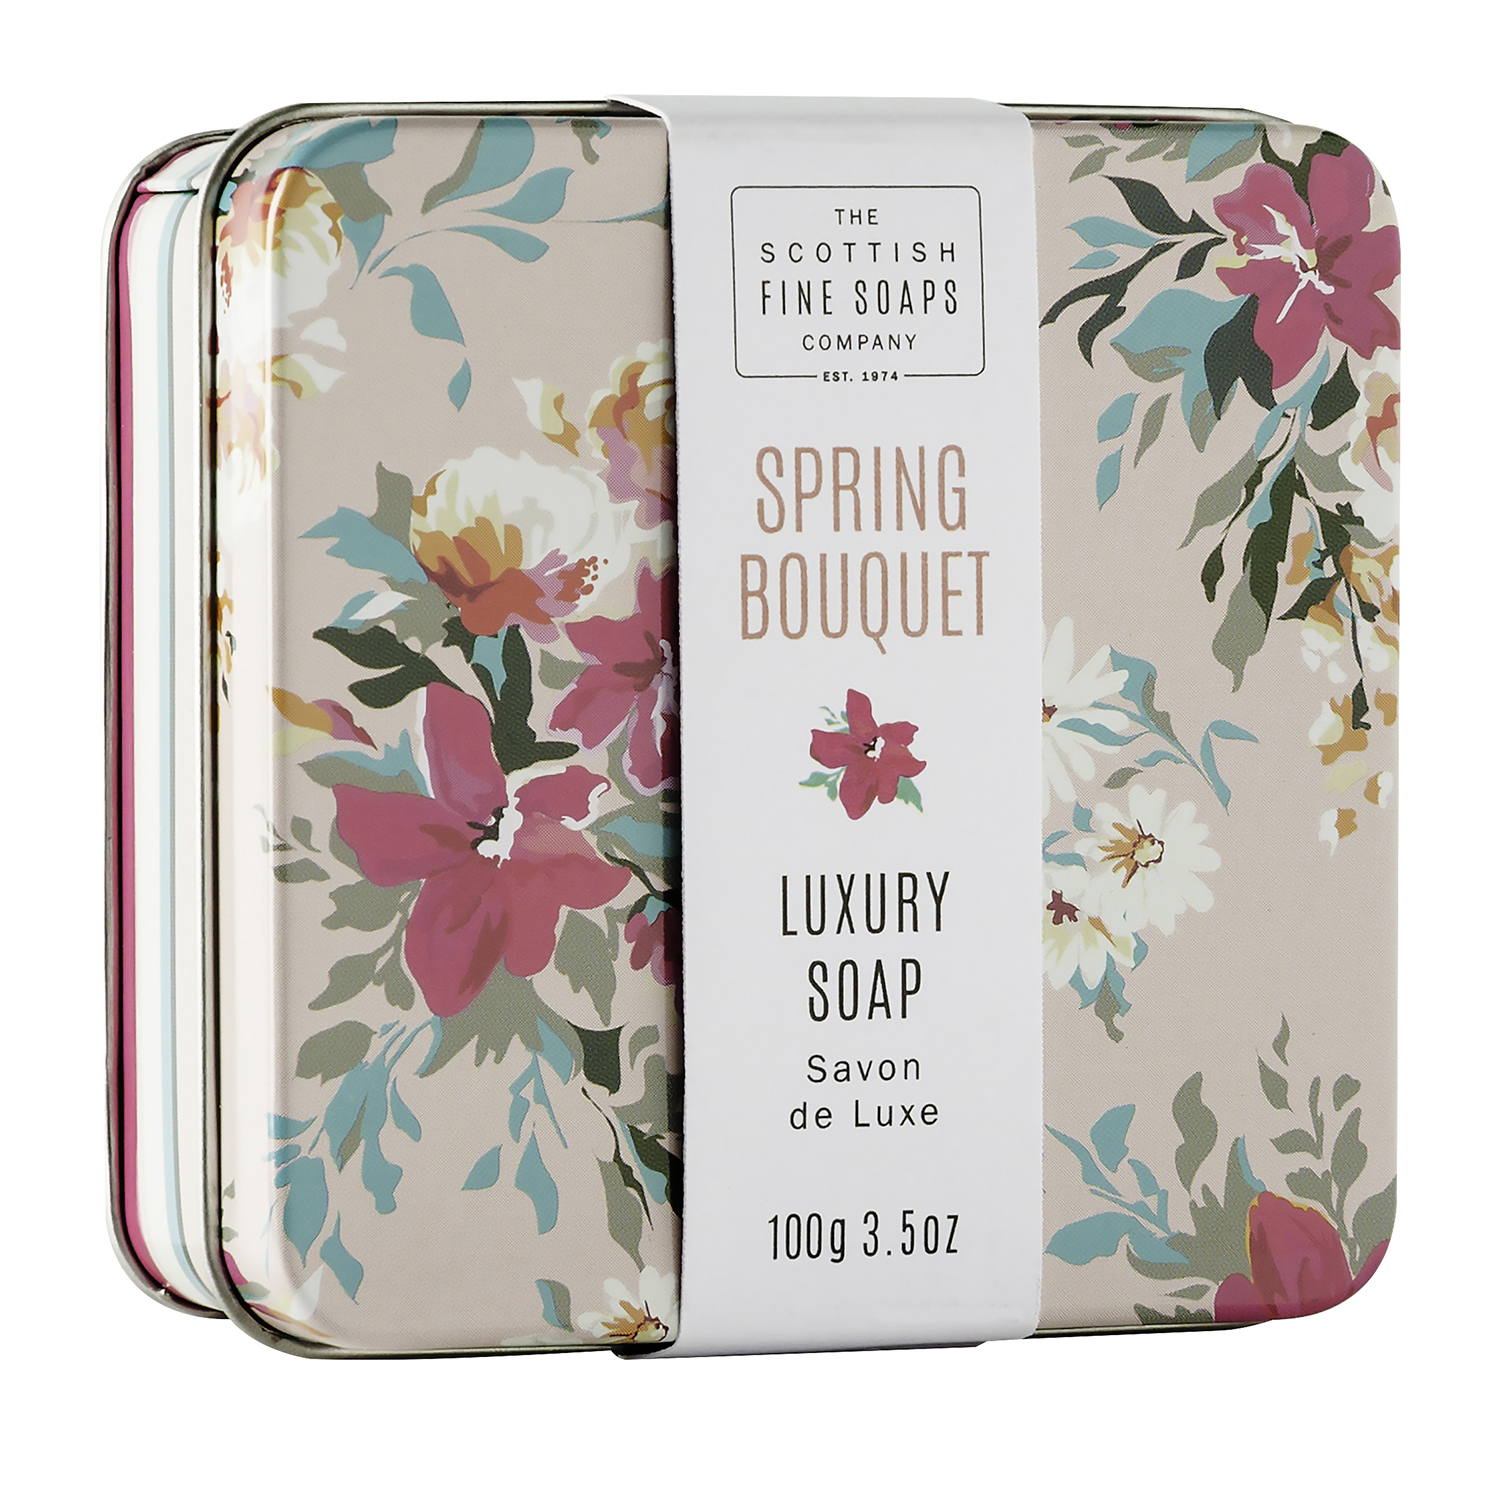 The Scottish Fine Soaps Company – Set of 4 Assorted Floral Soaps in Gift Tins